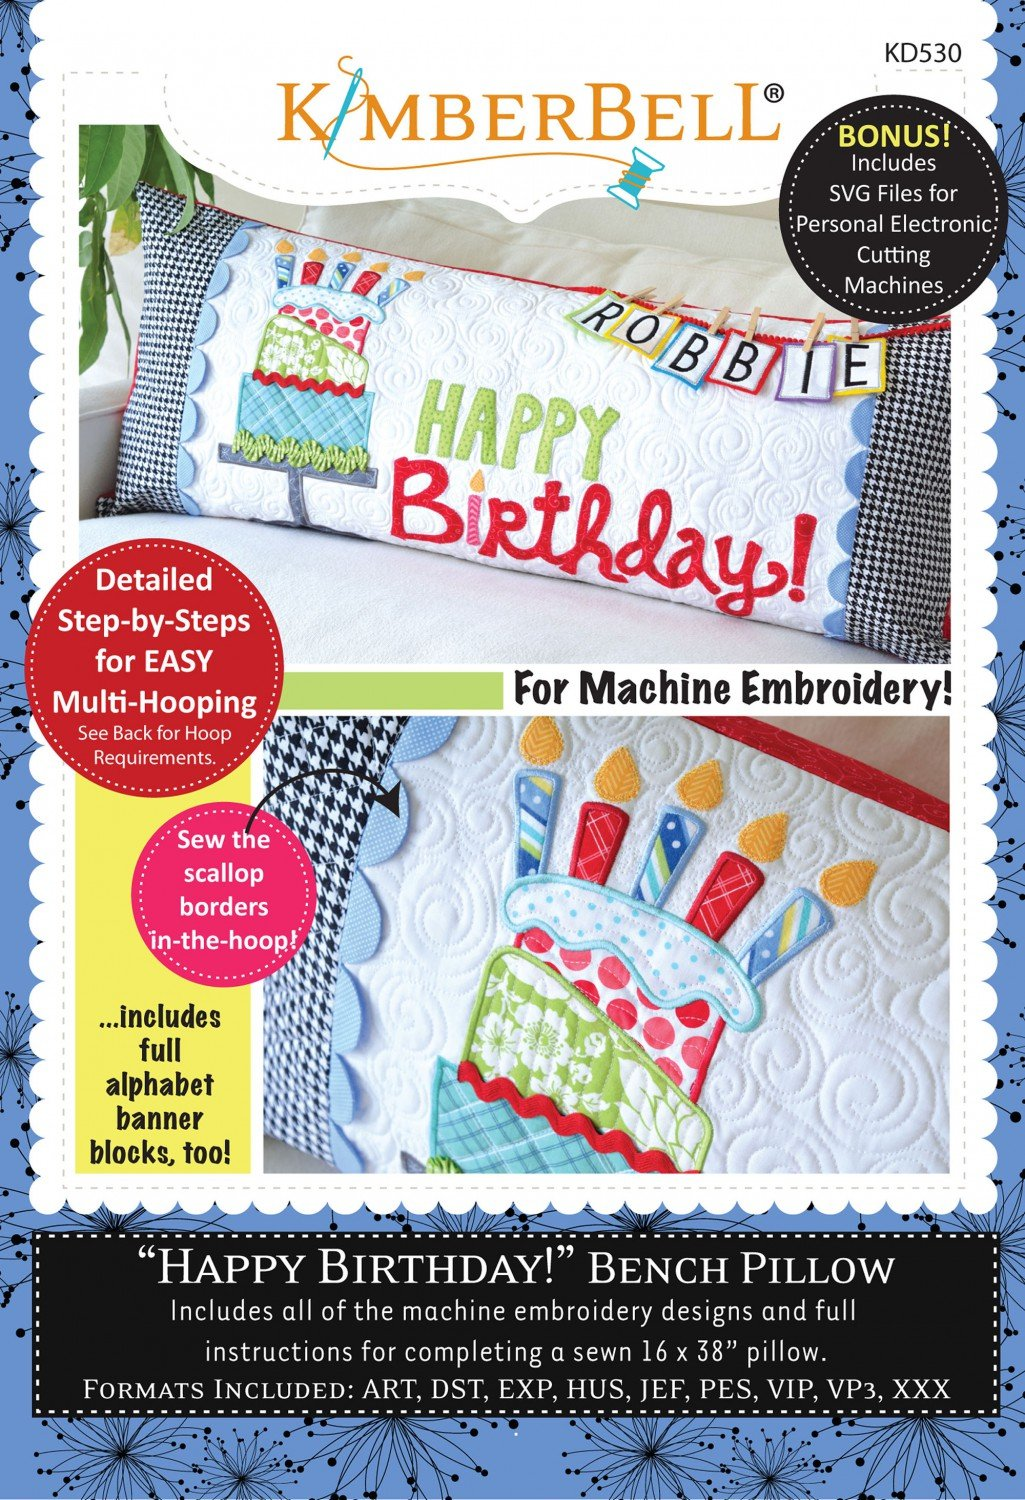 KIMBERBELL HAPPY BIRTHDAY BENCH PILLOW FOR MACHINE EMBROIDERY! KD530